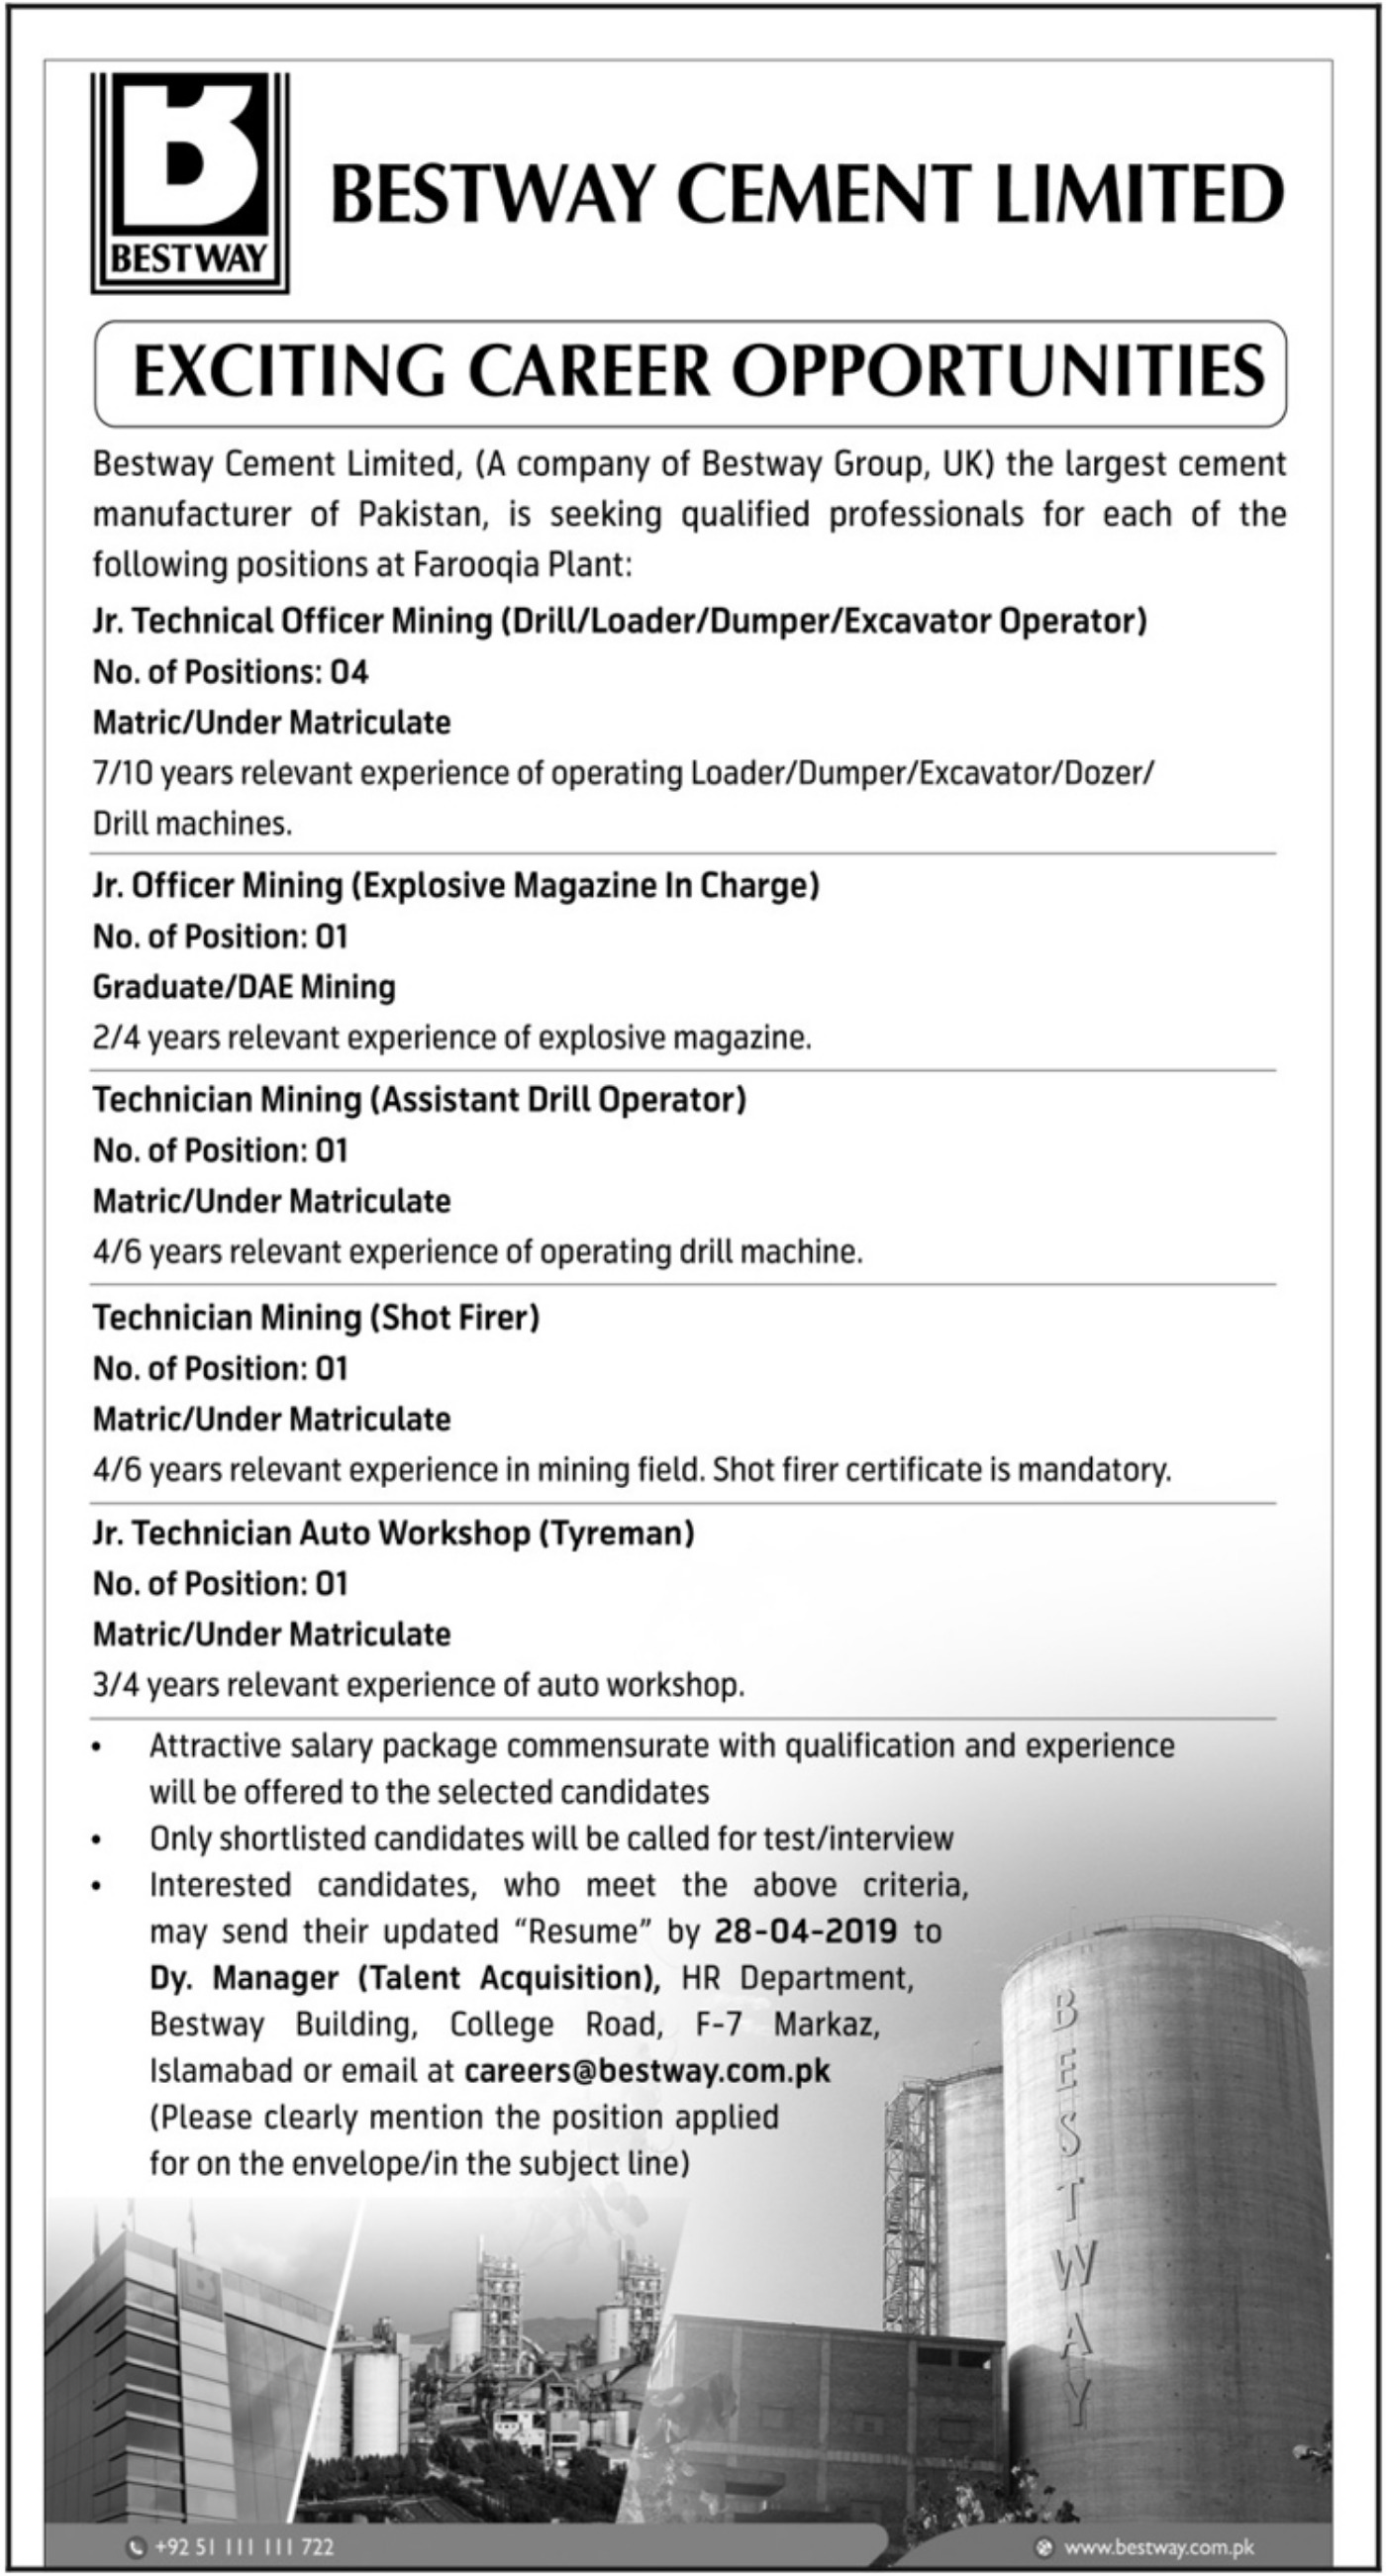 Bestway Cement Limited Jobs 2019 Exciting Career Opportunities